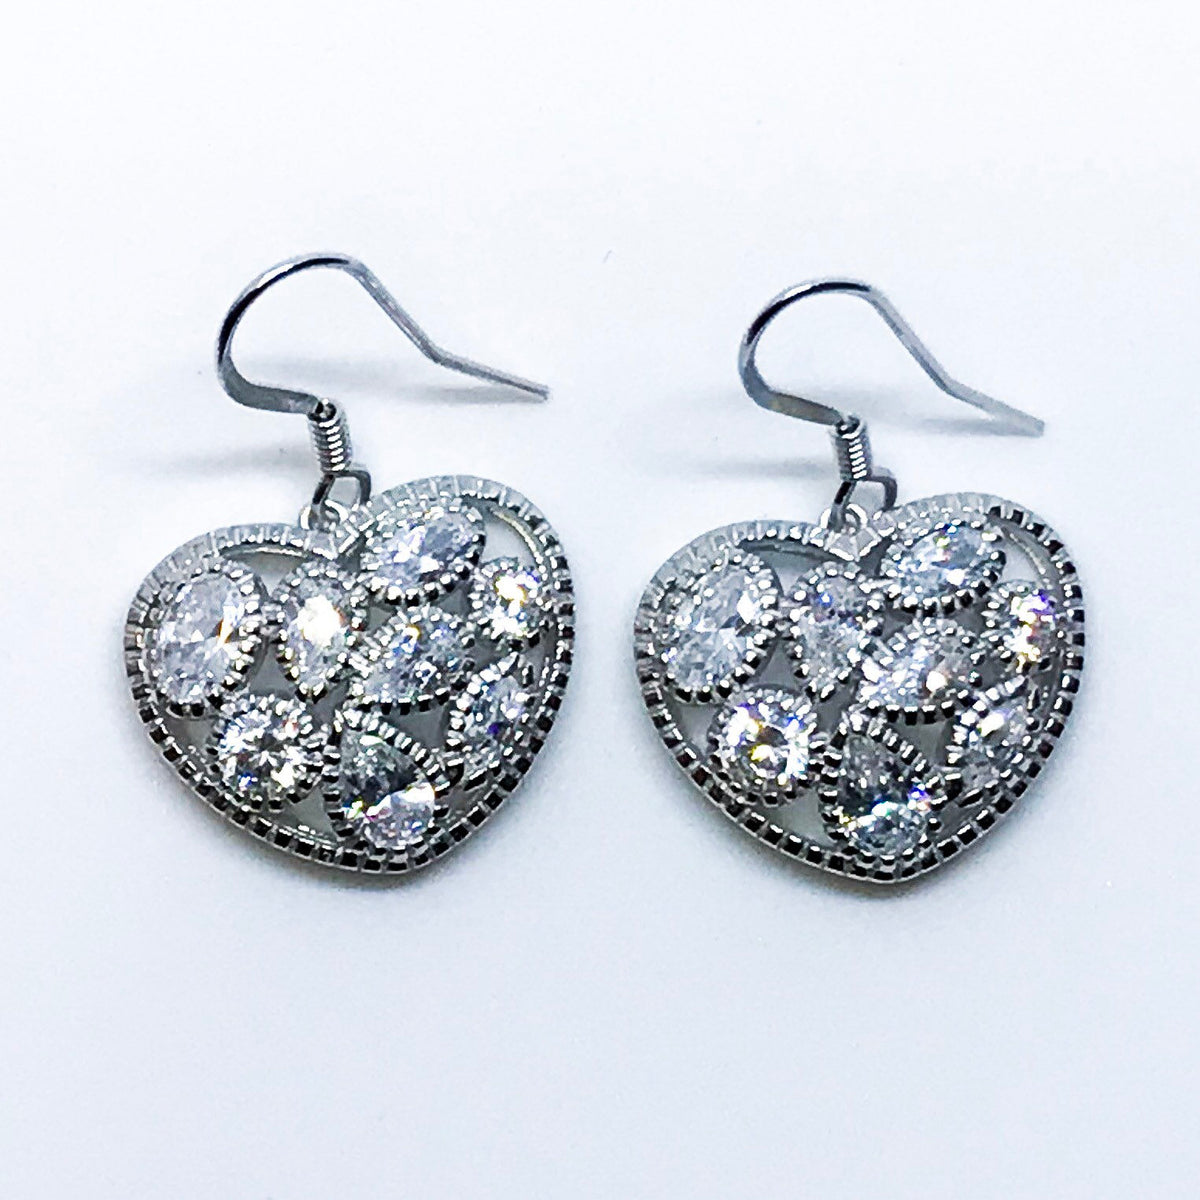 14K White Gold on Sterling Silver Dangling Heart Shaped Earrings - 3 Royal Dazzy